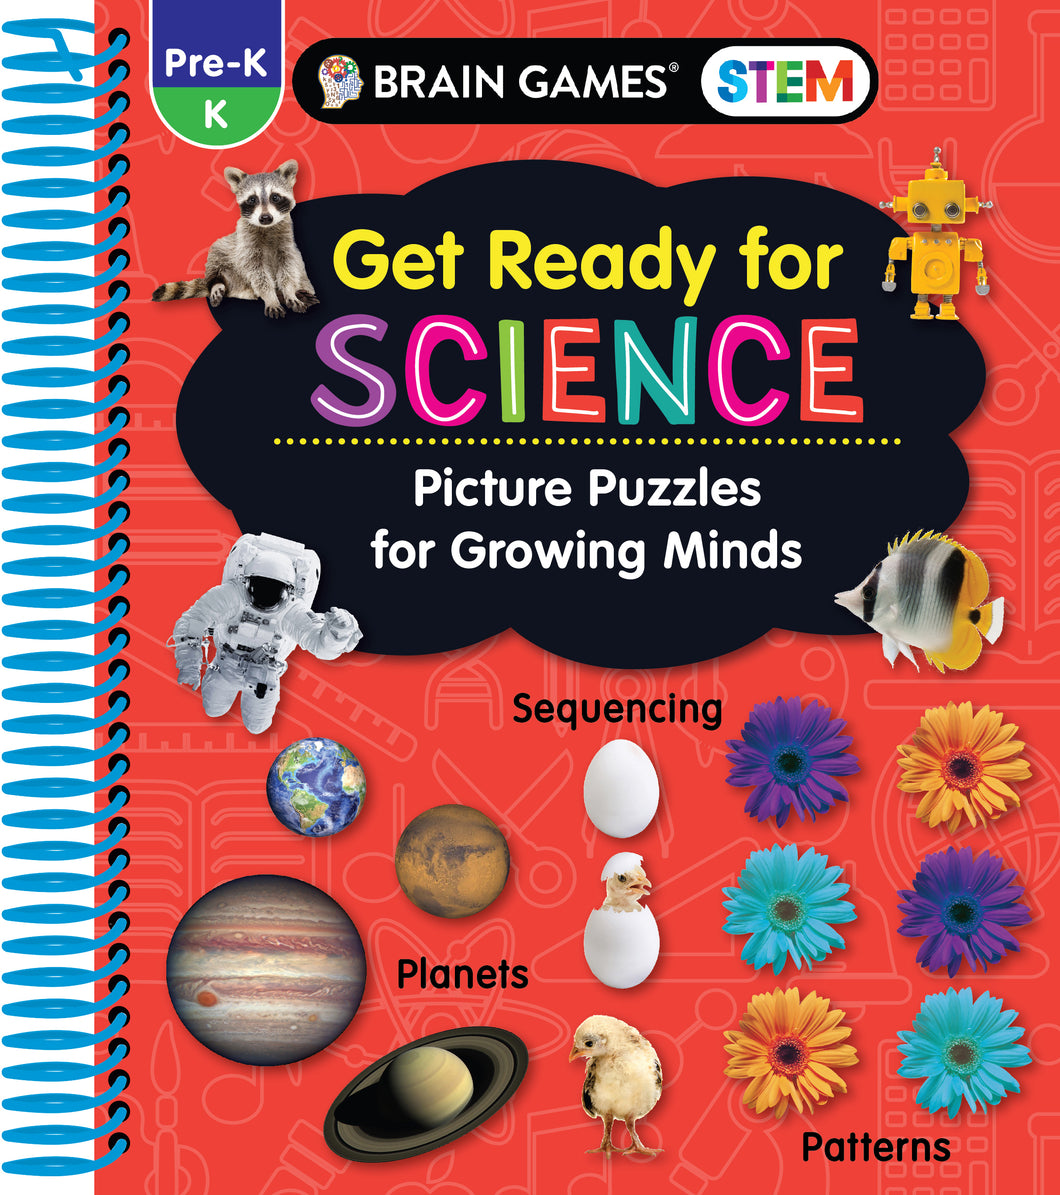 Brain Games STEM Get Ready for Science